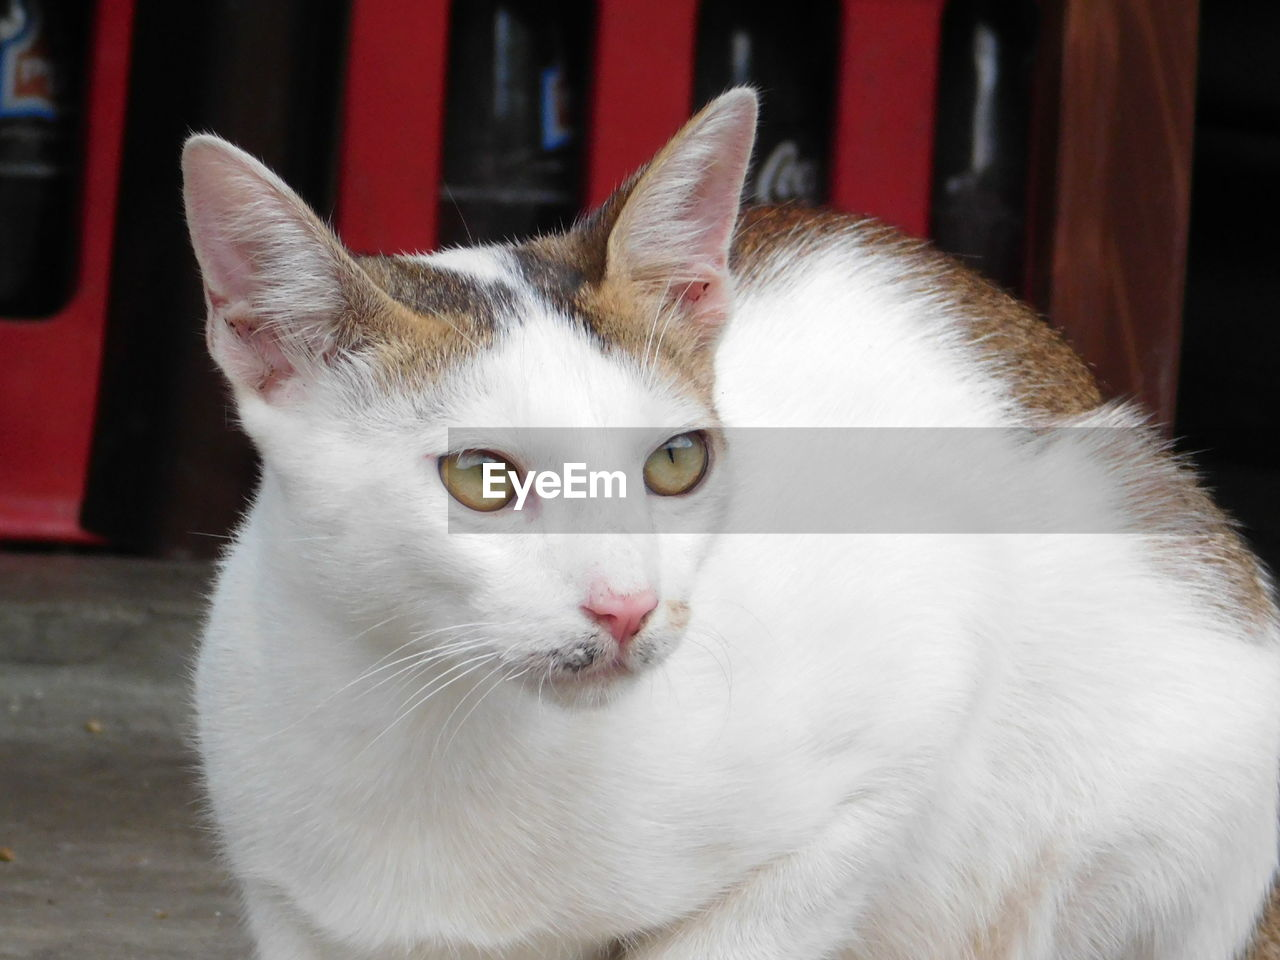 pets, domestic, cat, domestic animals, animal, animal themes, mammal, feline, domestic cat, one animal, vertebrate, white color, close-up, no people, portrait, focus on foreground, looking at camera, whisker, relaxation, indoors, animal head, animal eye, yellow eyes